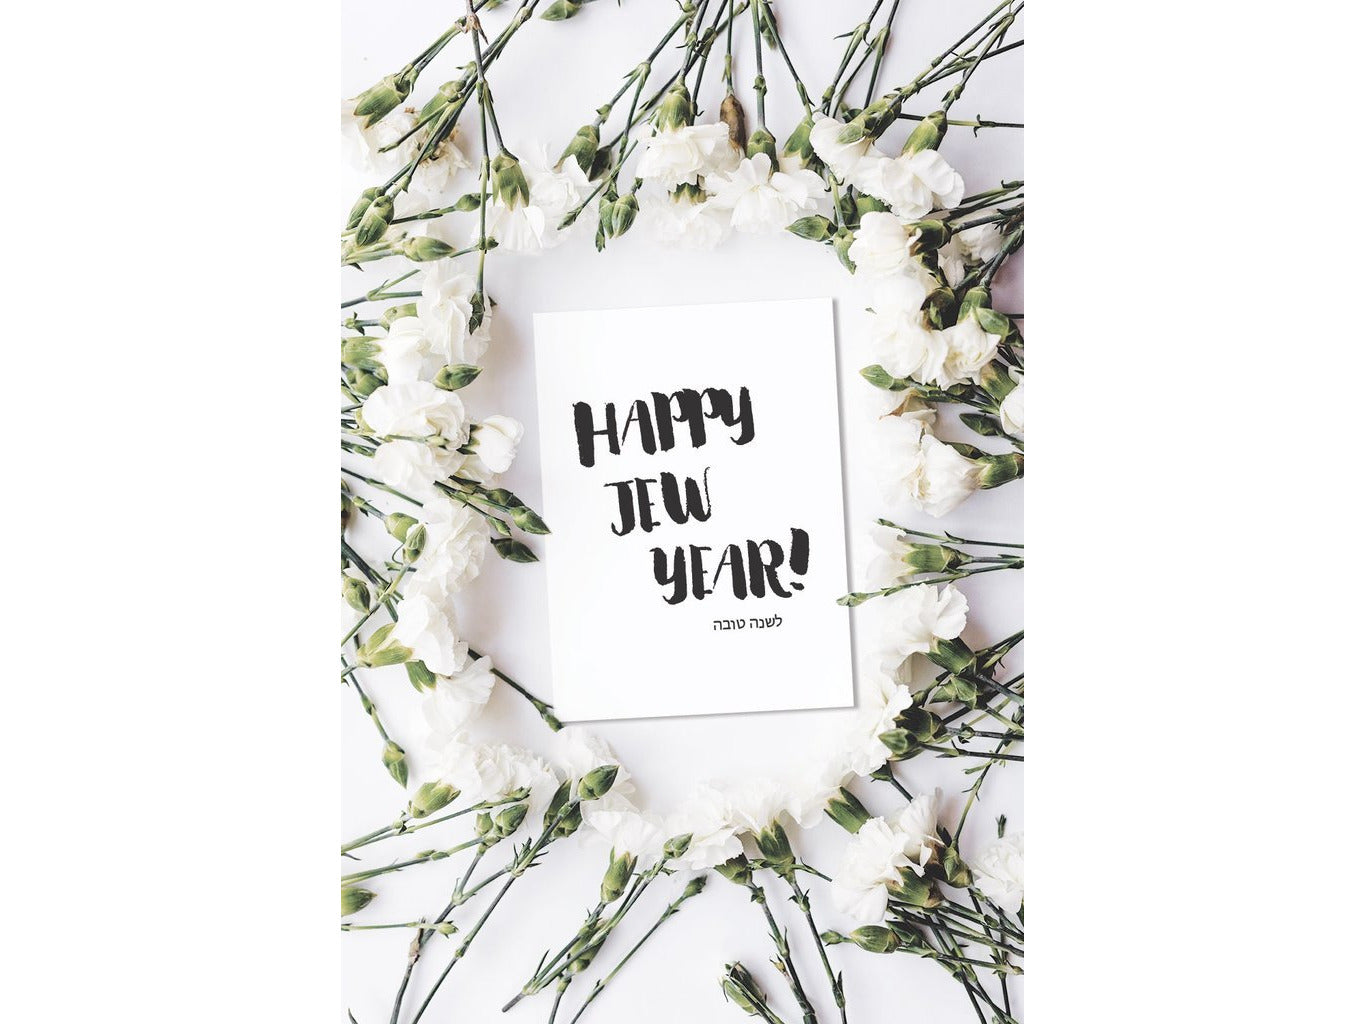 Happy Jew Year - Rosh Hashanah Greeting Cards - Pack of 6